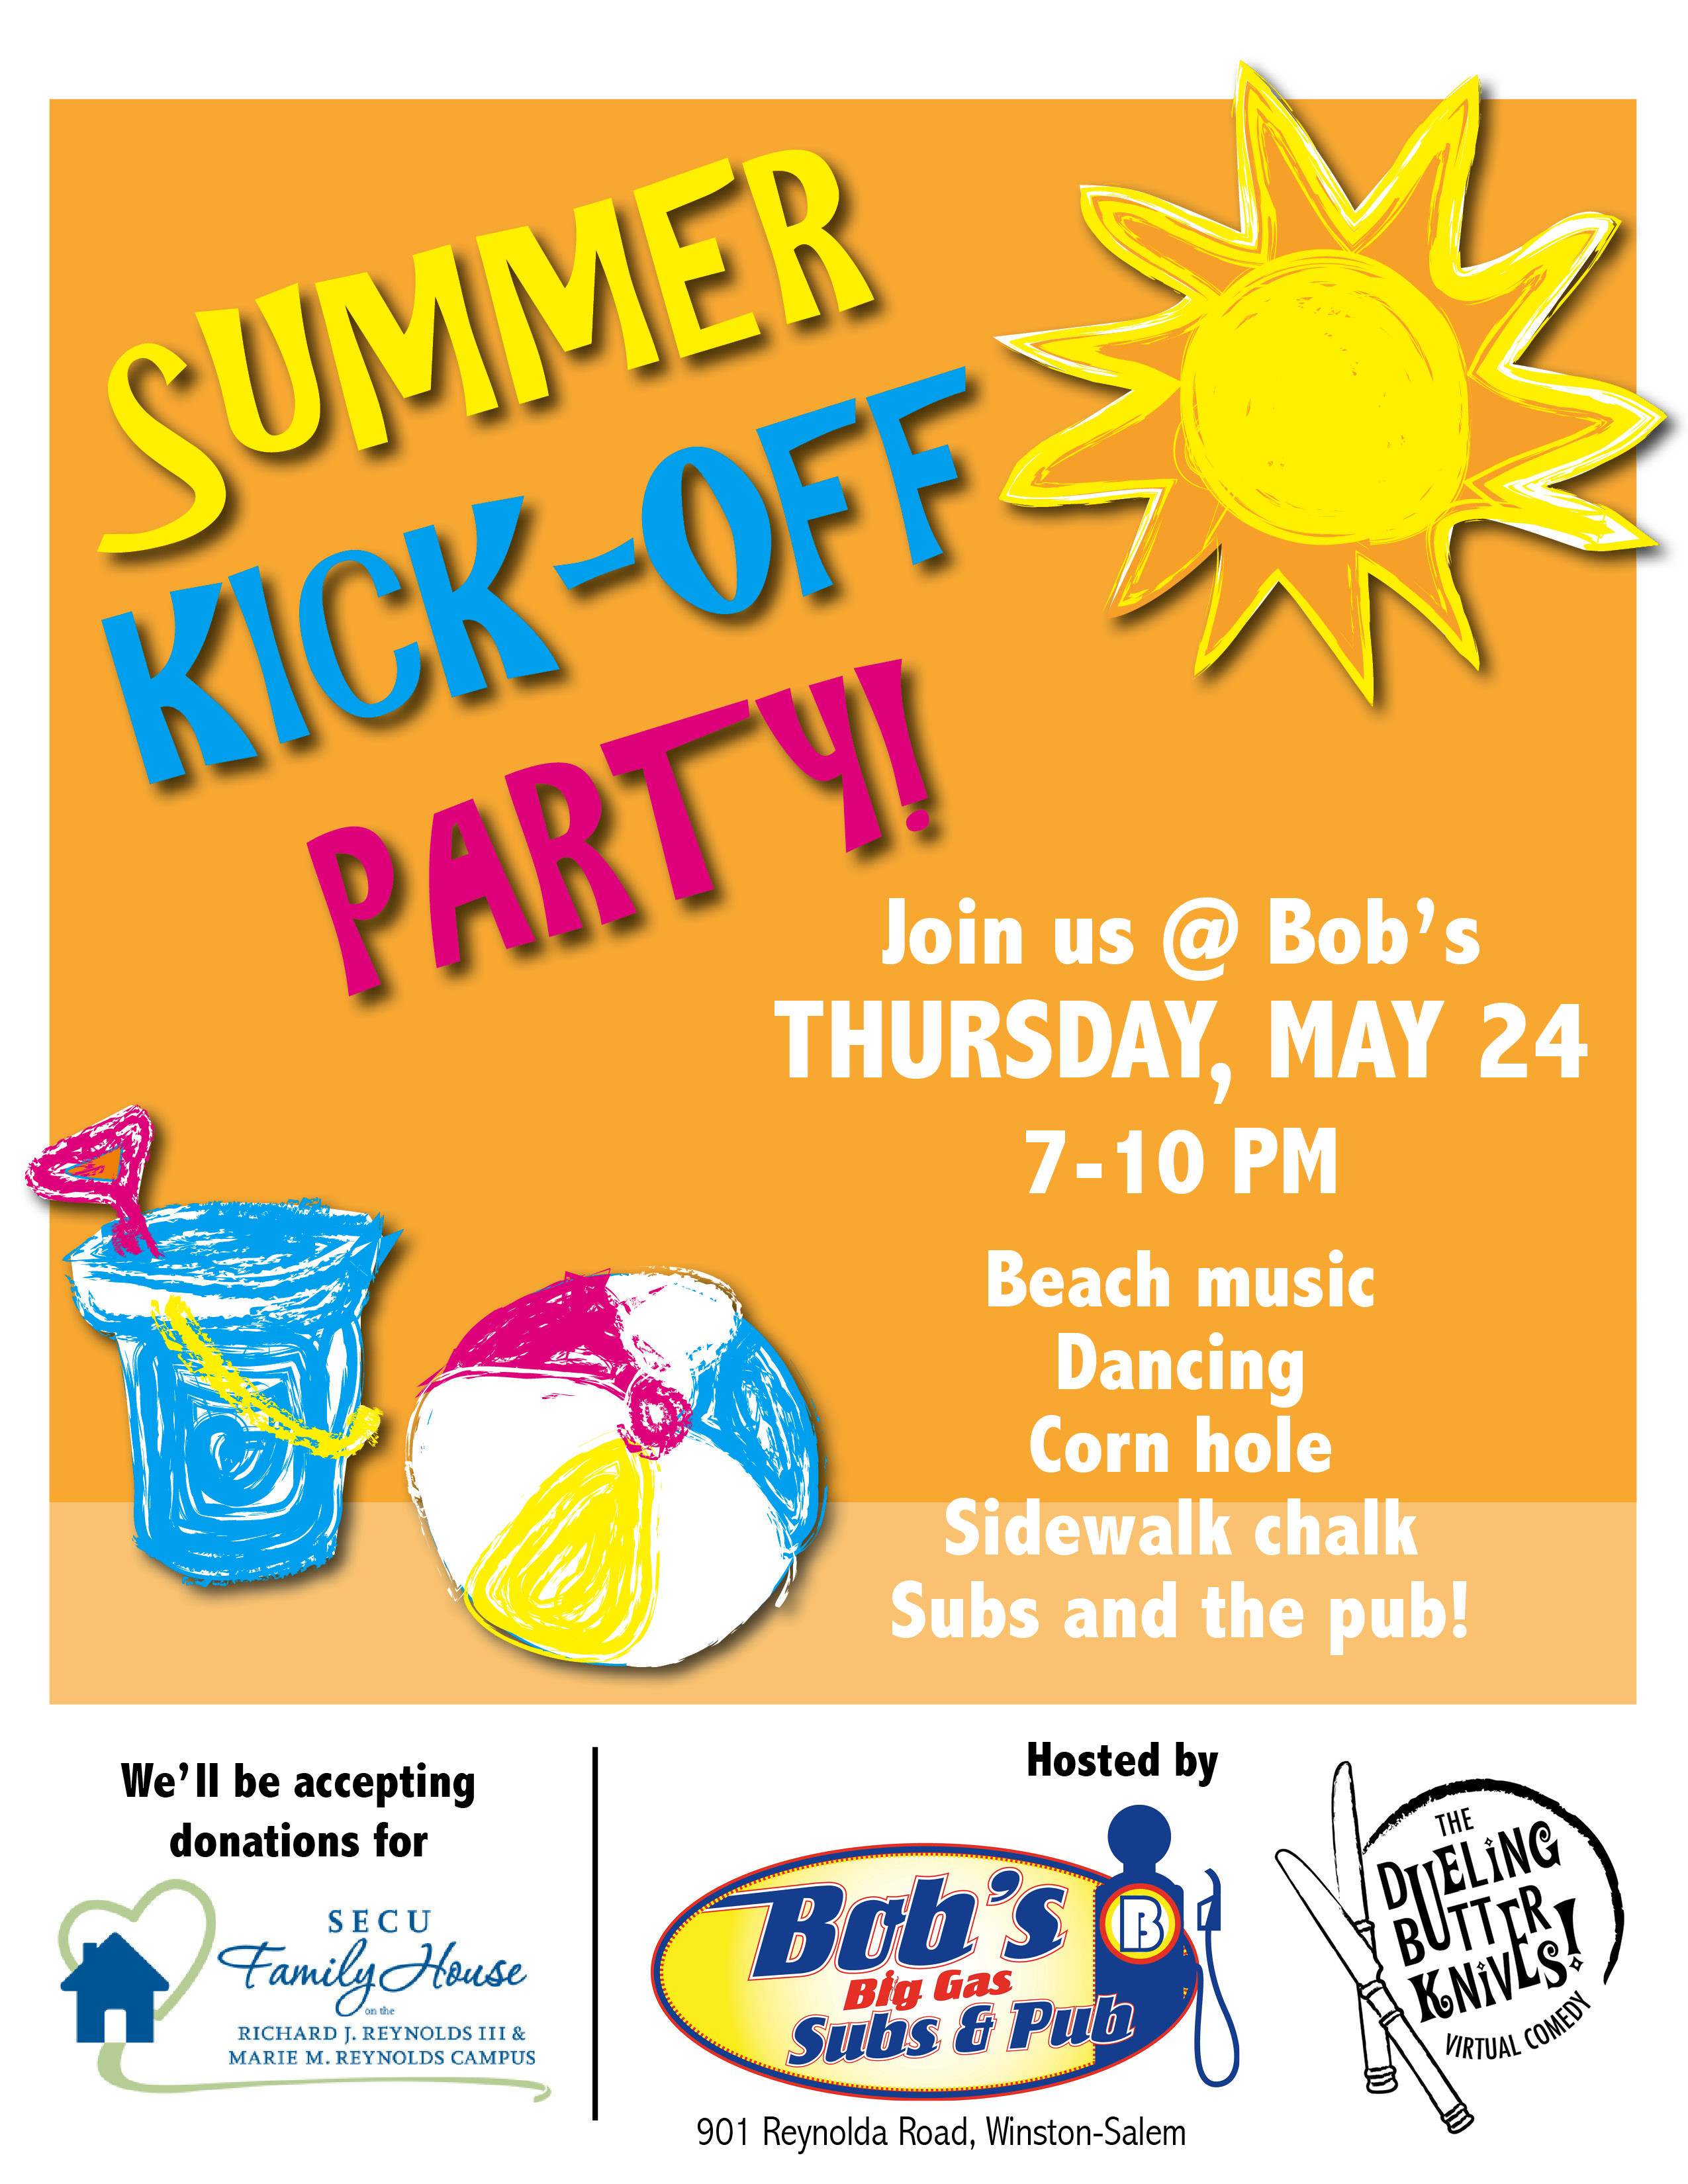 Summer Kickoff Party Ideas  Summer Kick f Party with Bob s Big Gas Subs and Pub